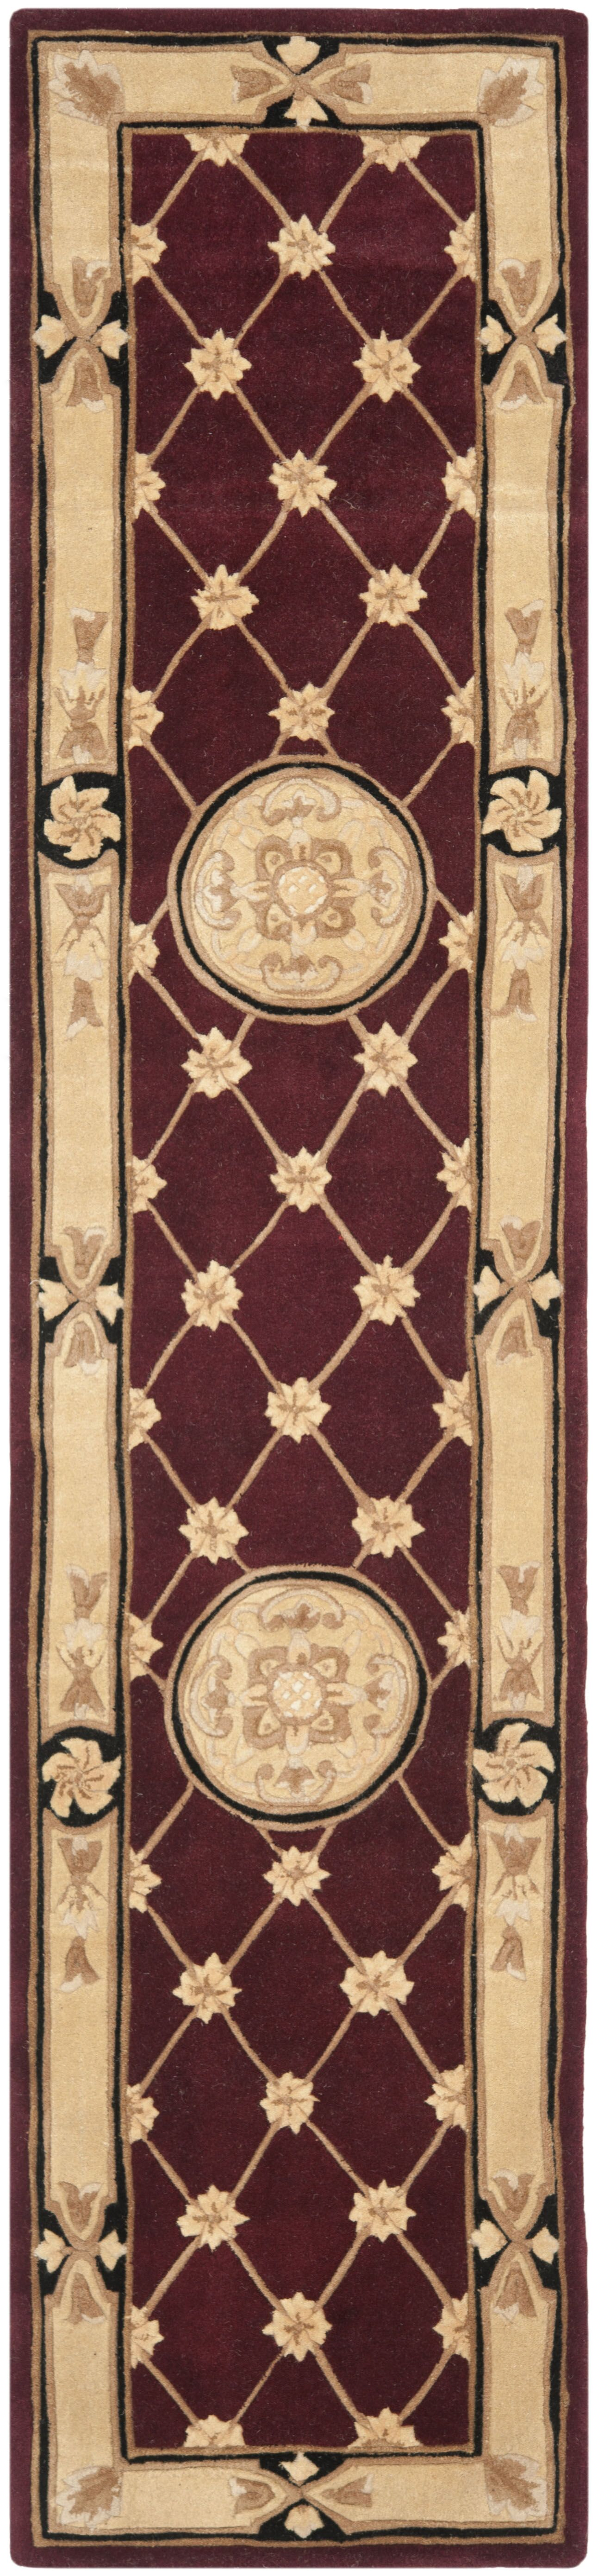 Naples Hand-Tufted Wool Burgundy/Ivory Area Rug Rug Size: Runner 2'3